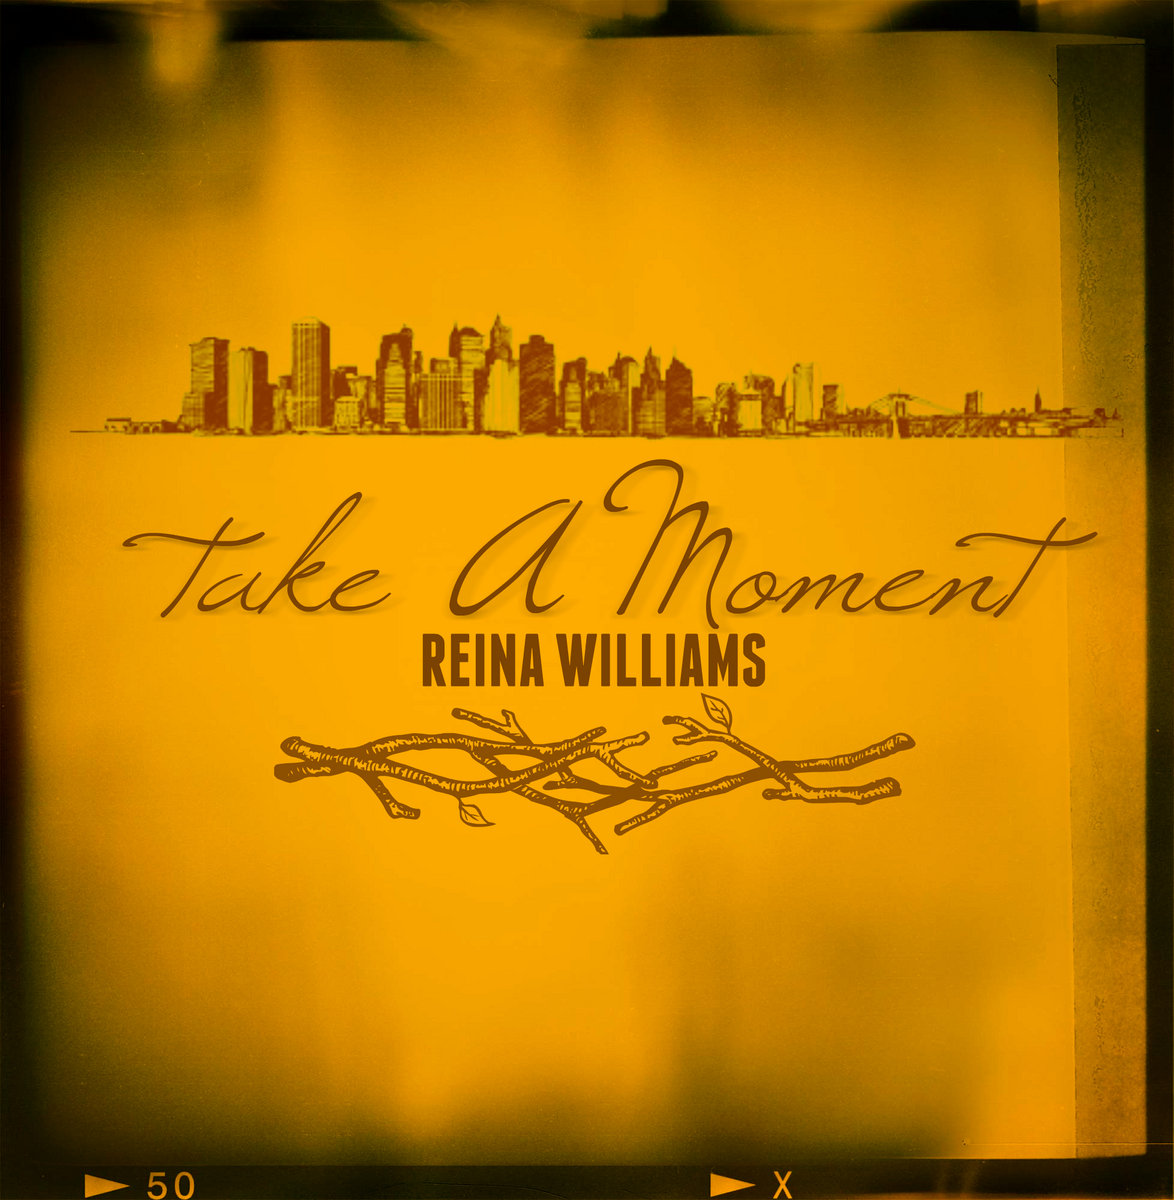 Take A Moment by Reina Williams